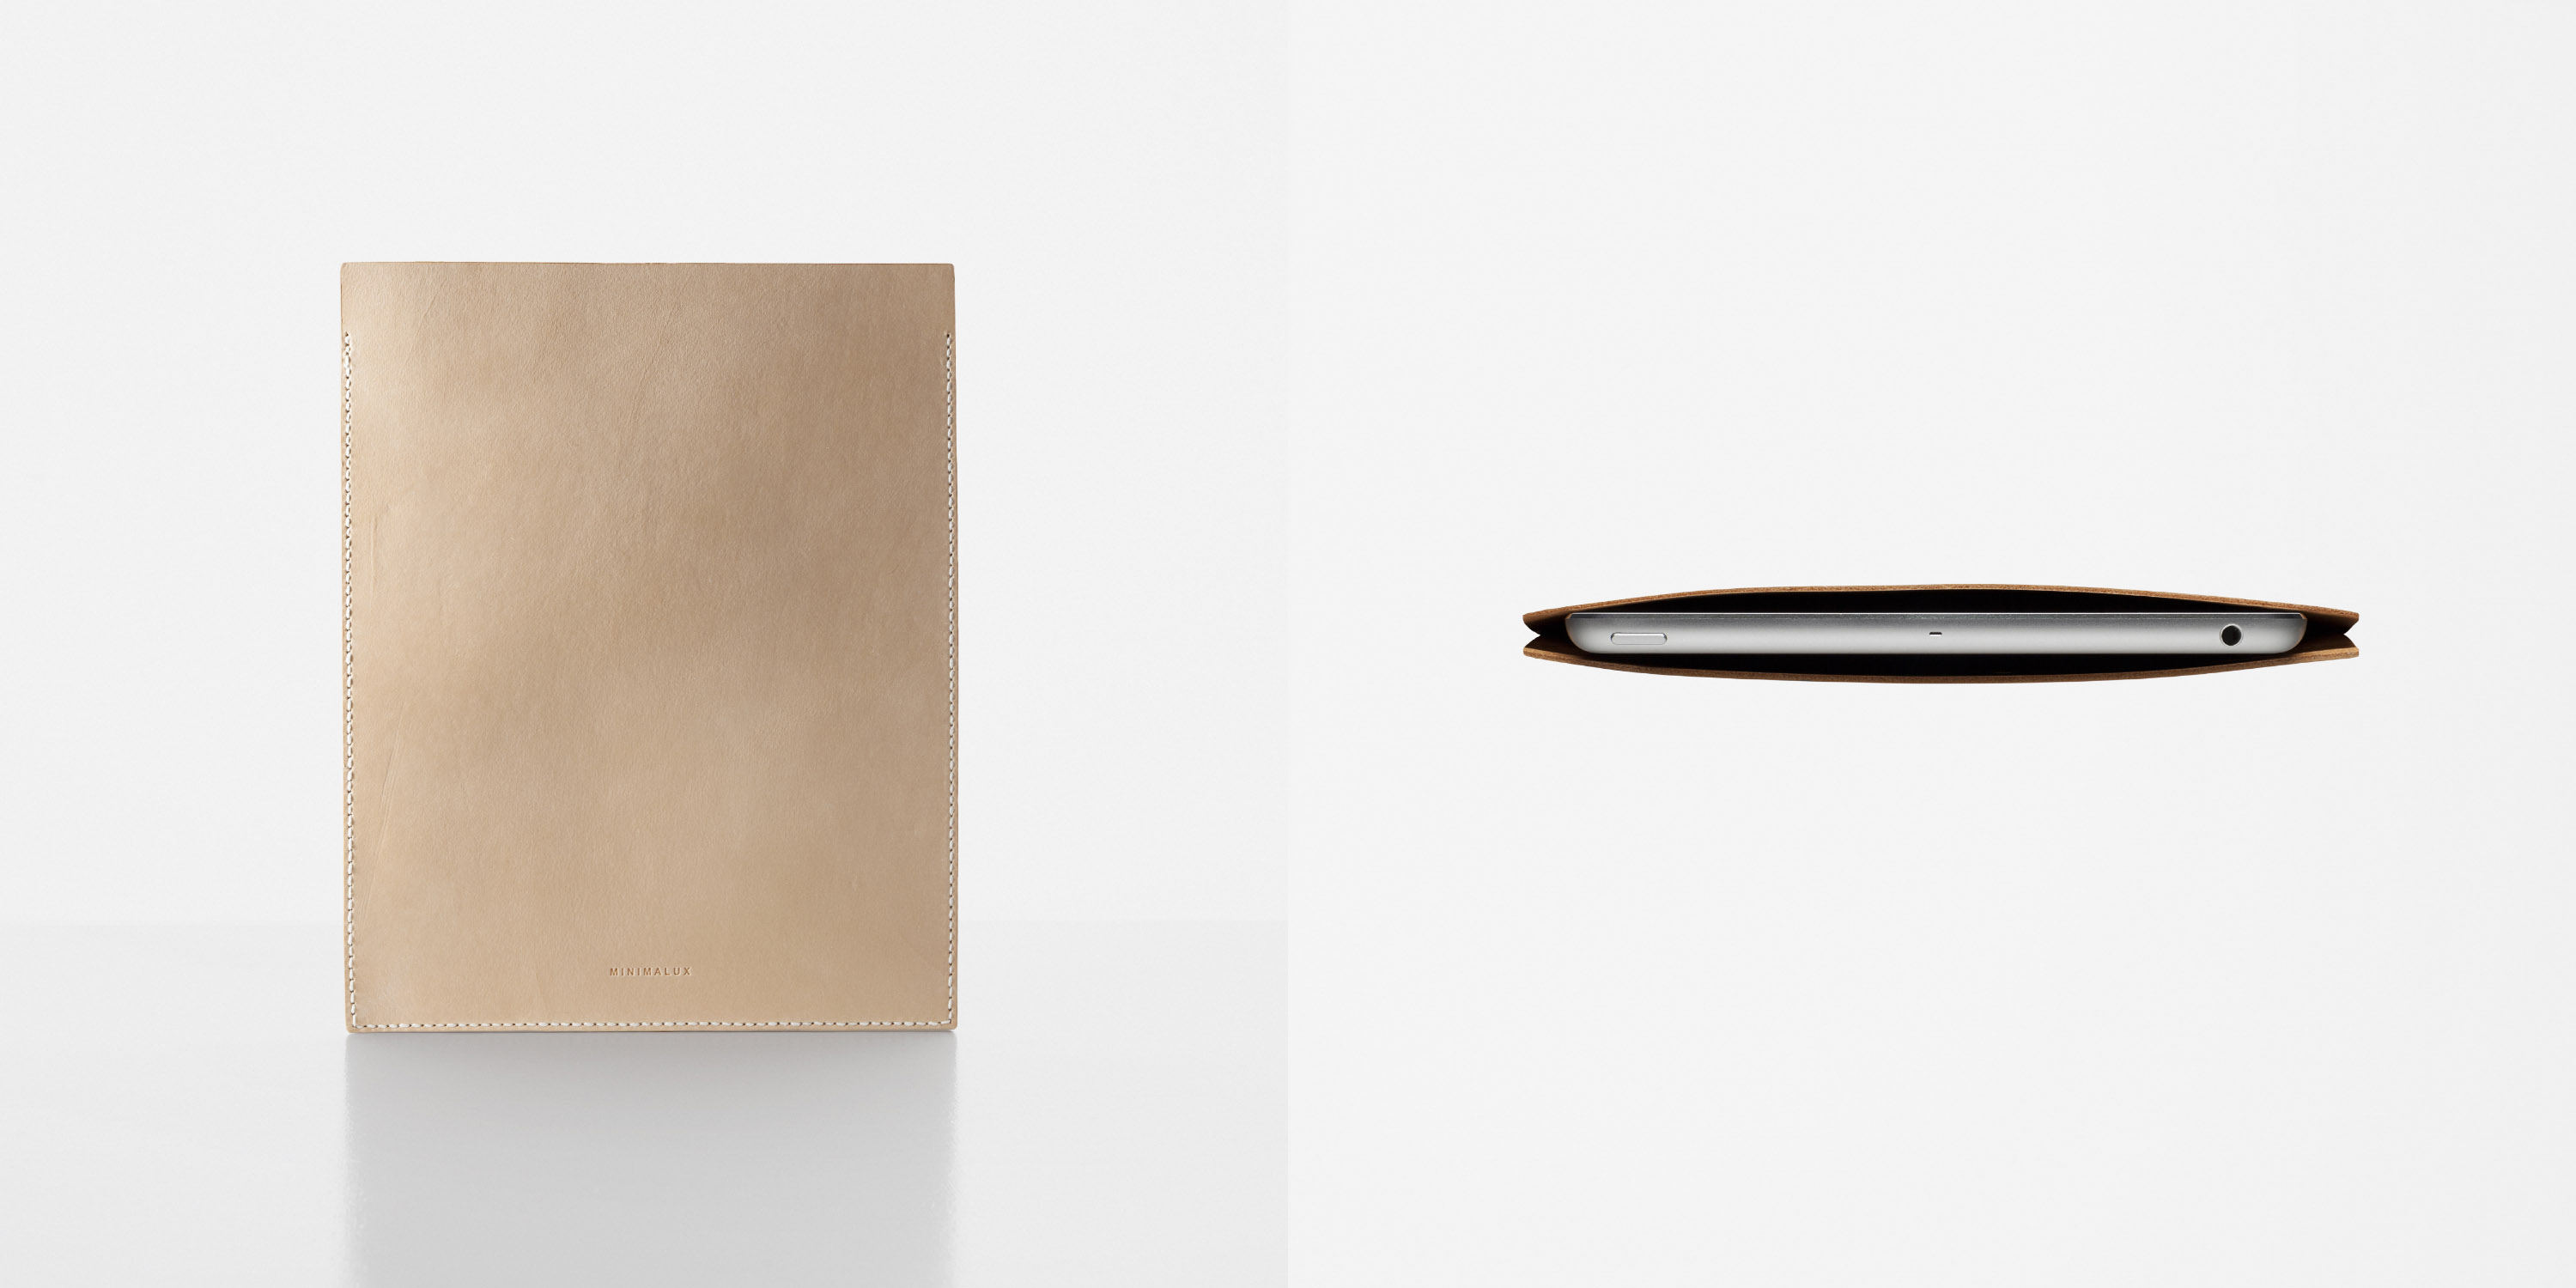 minimalux-ipad-leather-sleeve-end-profile